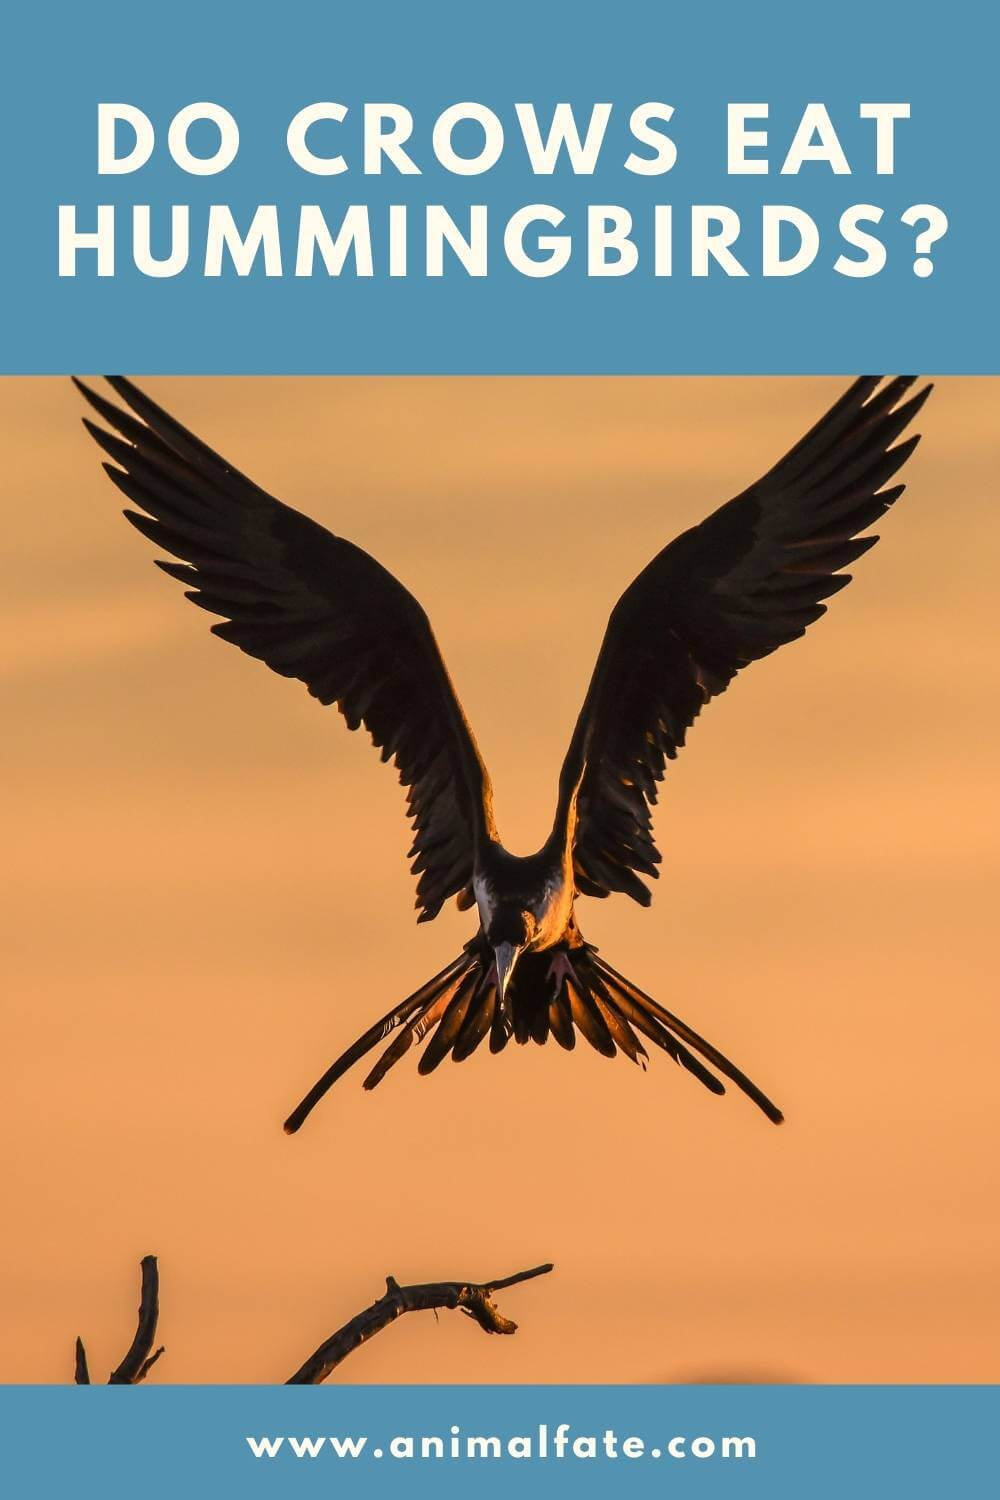 do crows eat hummingbirds